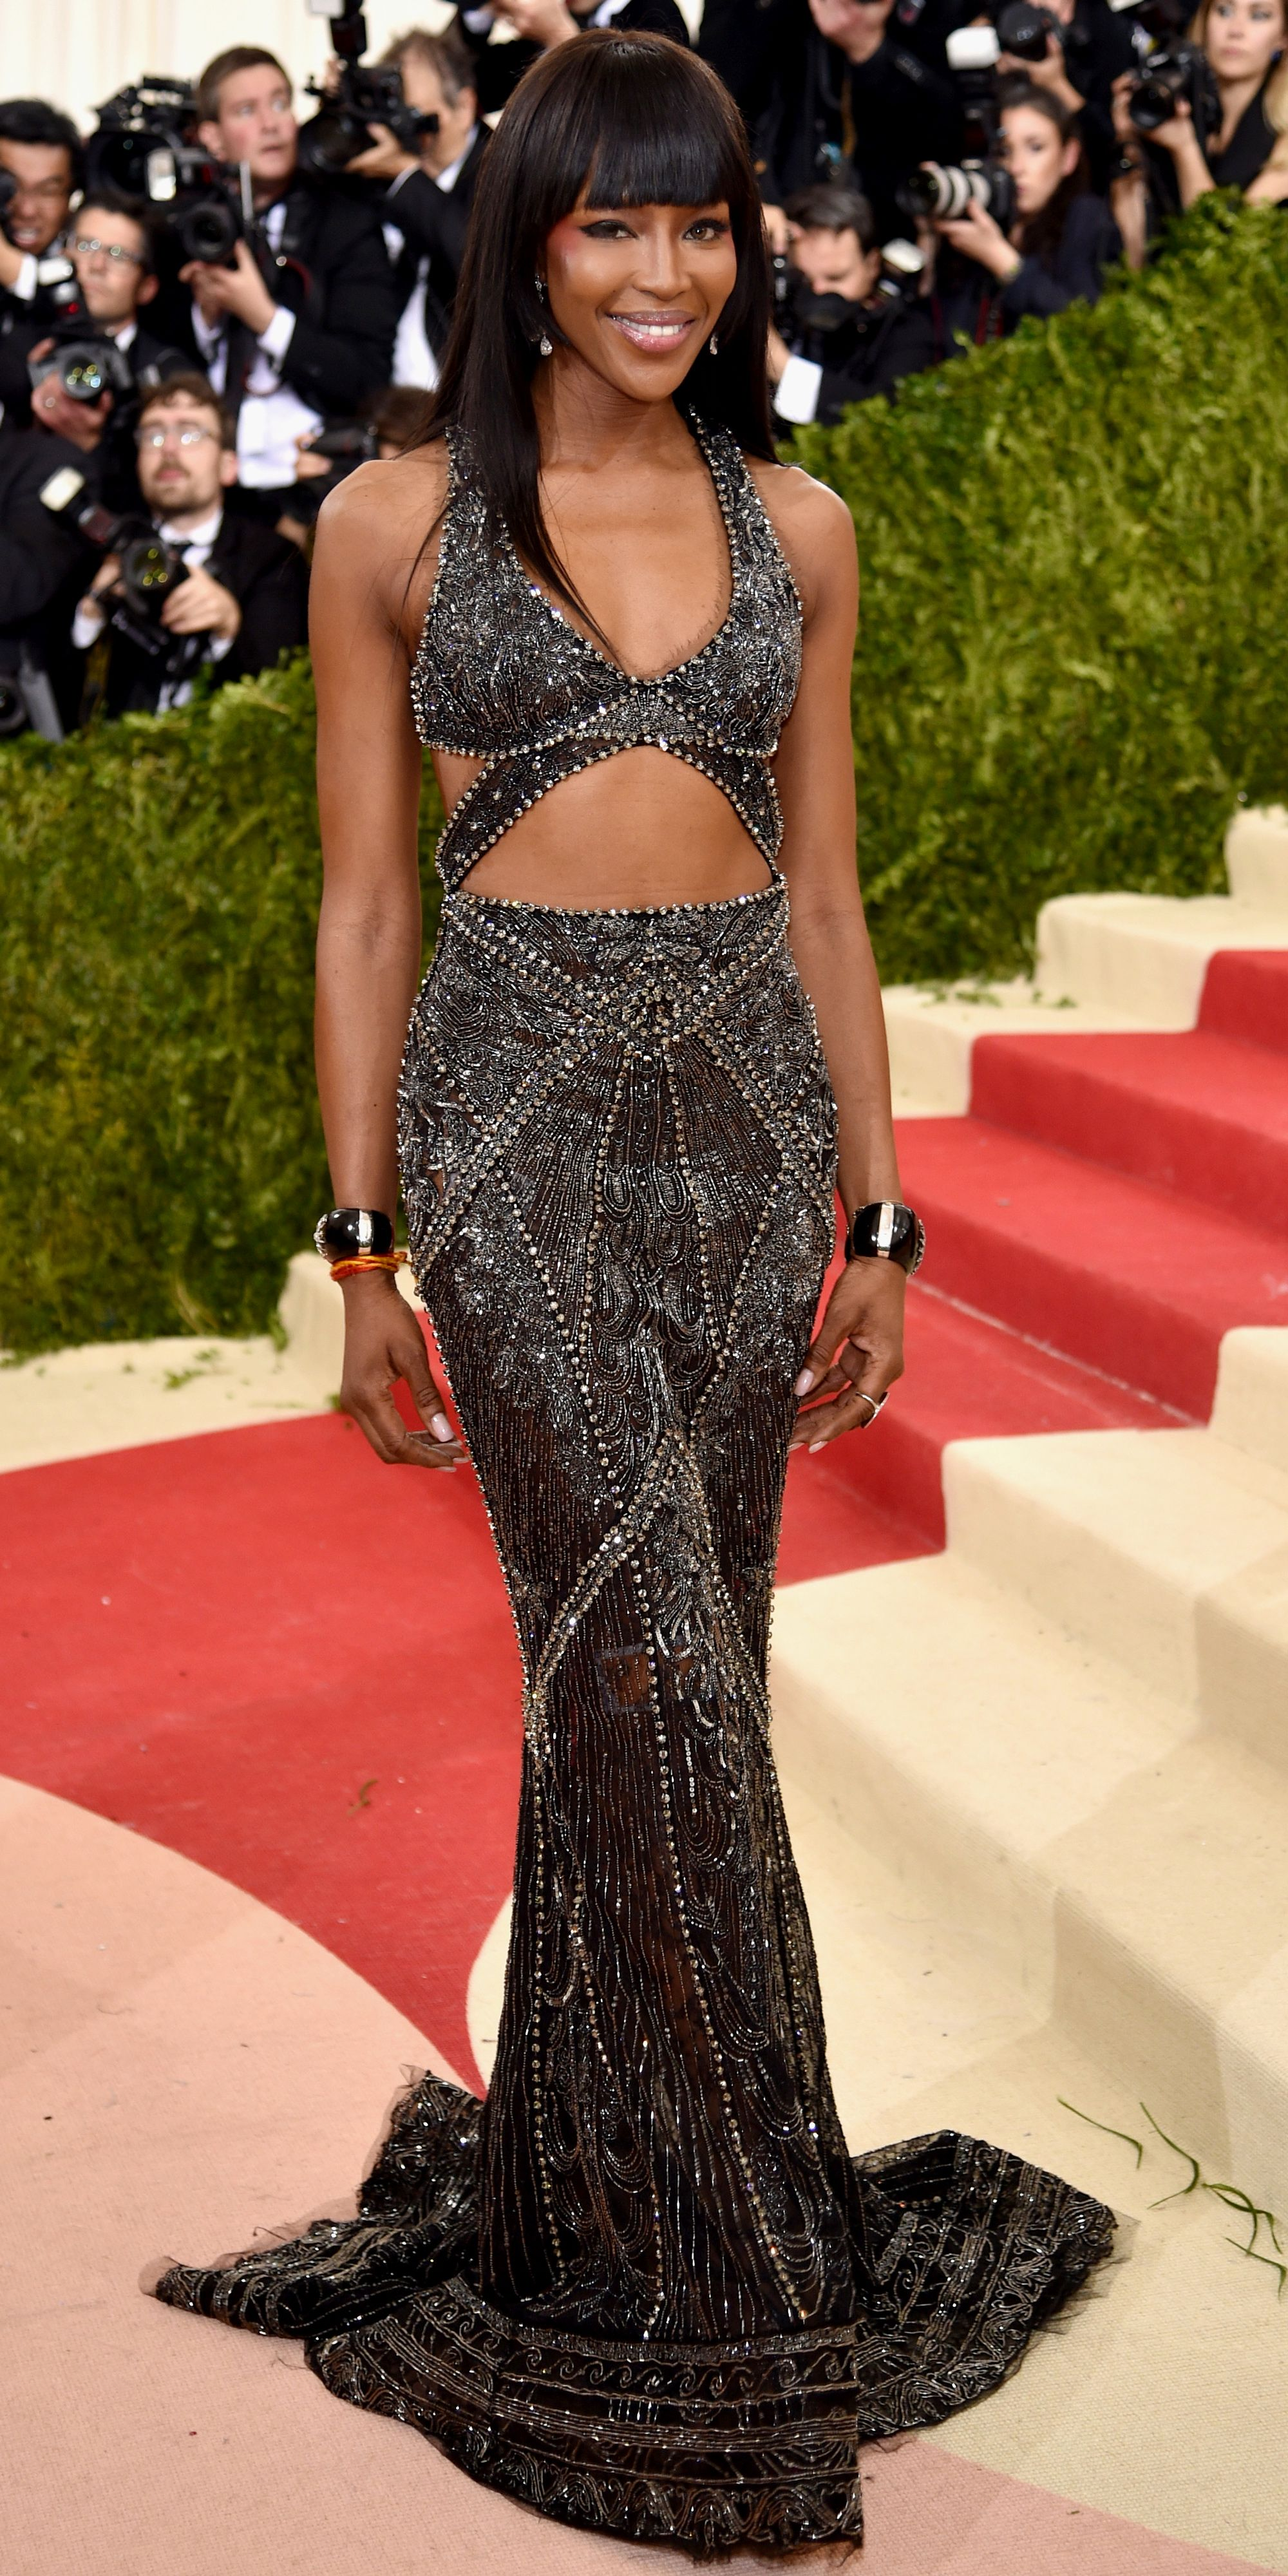 a84f1202f9 See All the Best Looks from the 2016 Met Gala Red Carpet - Naomi Campbell -  from InStyle.com